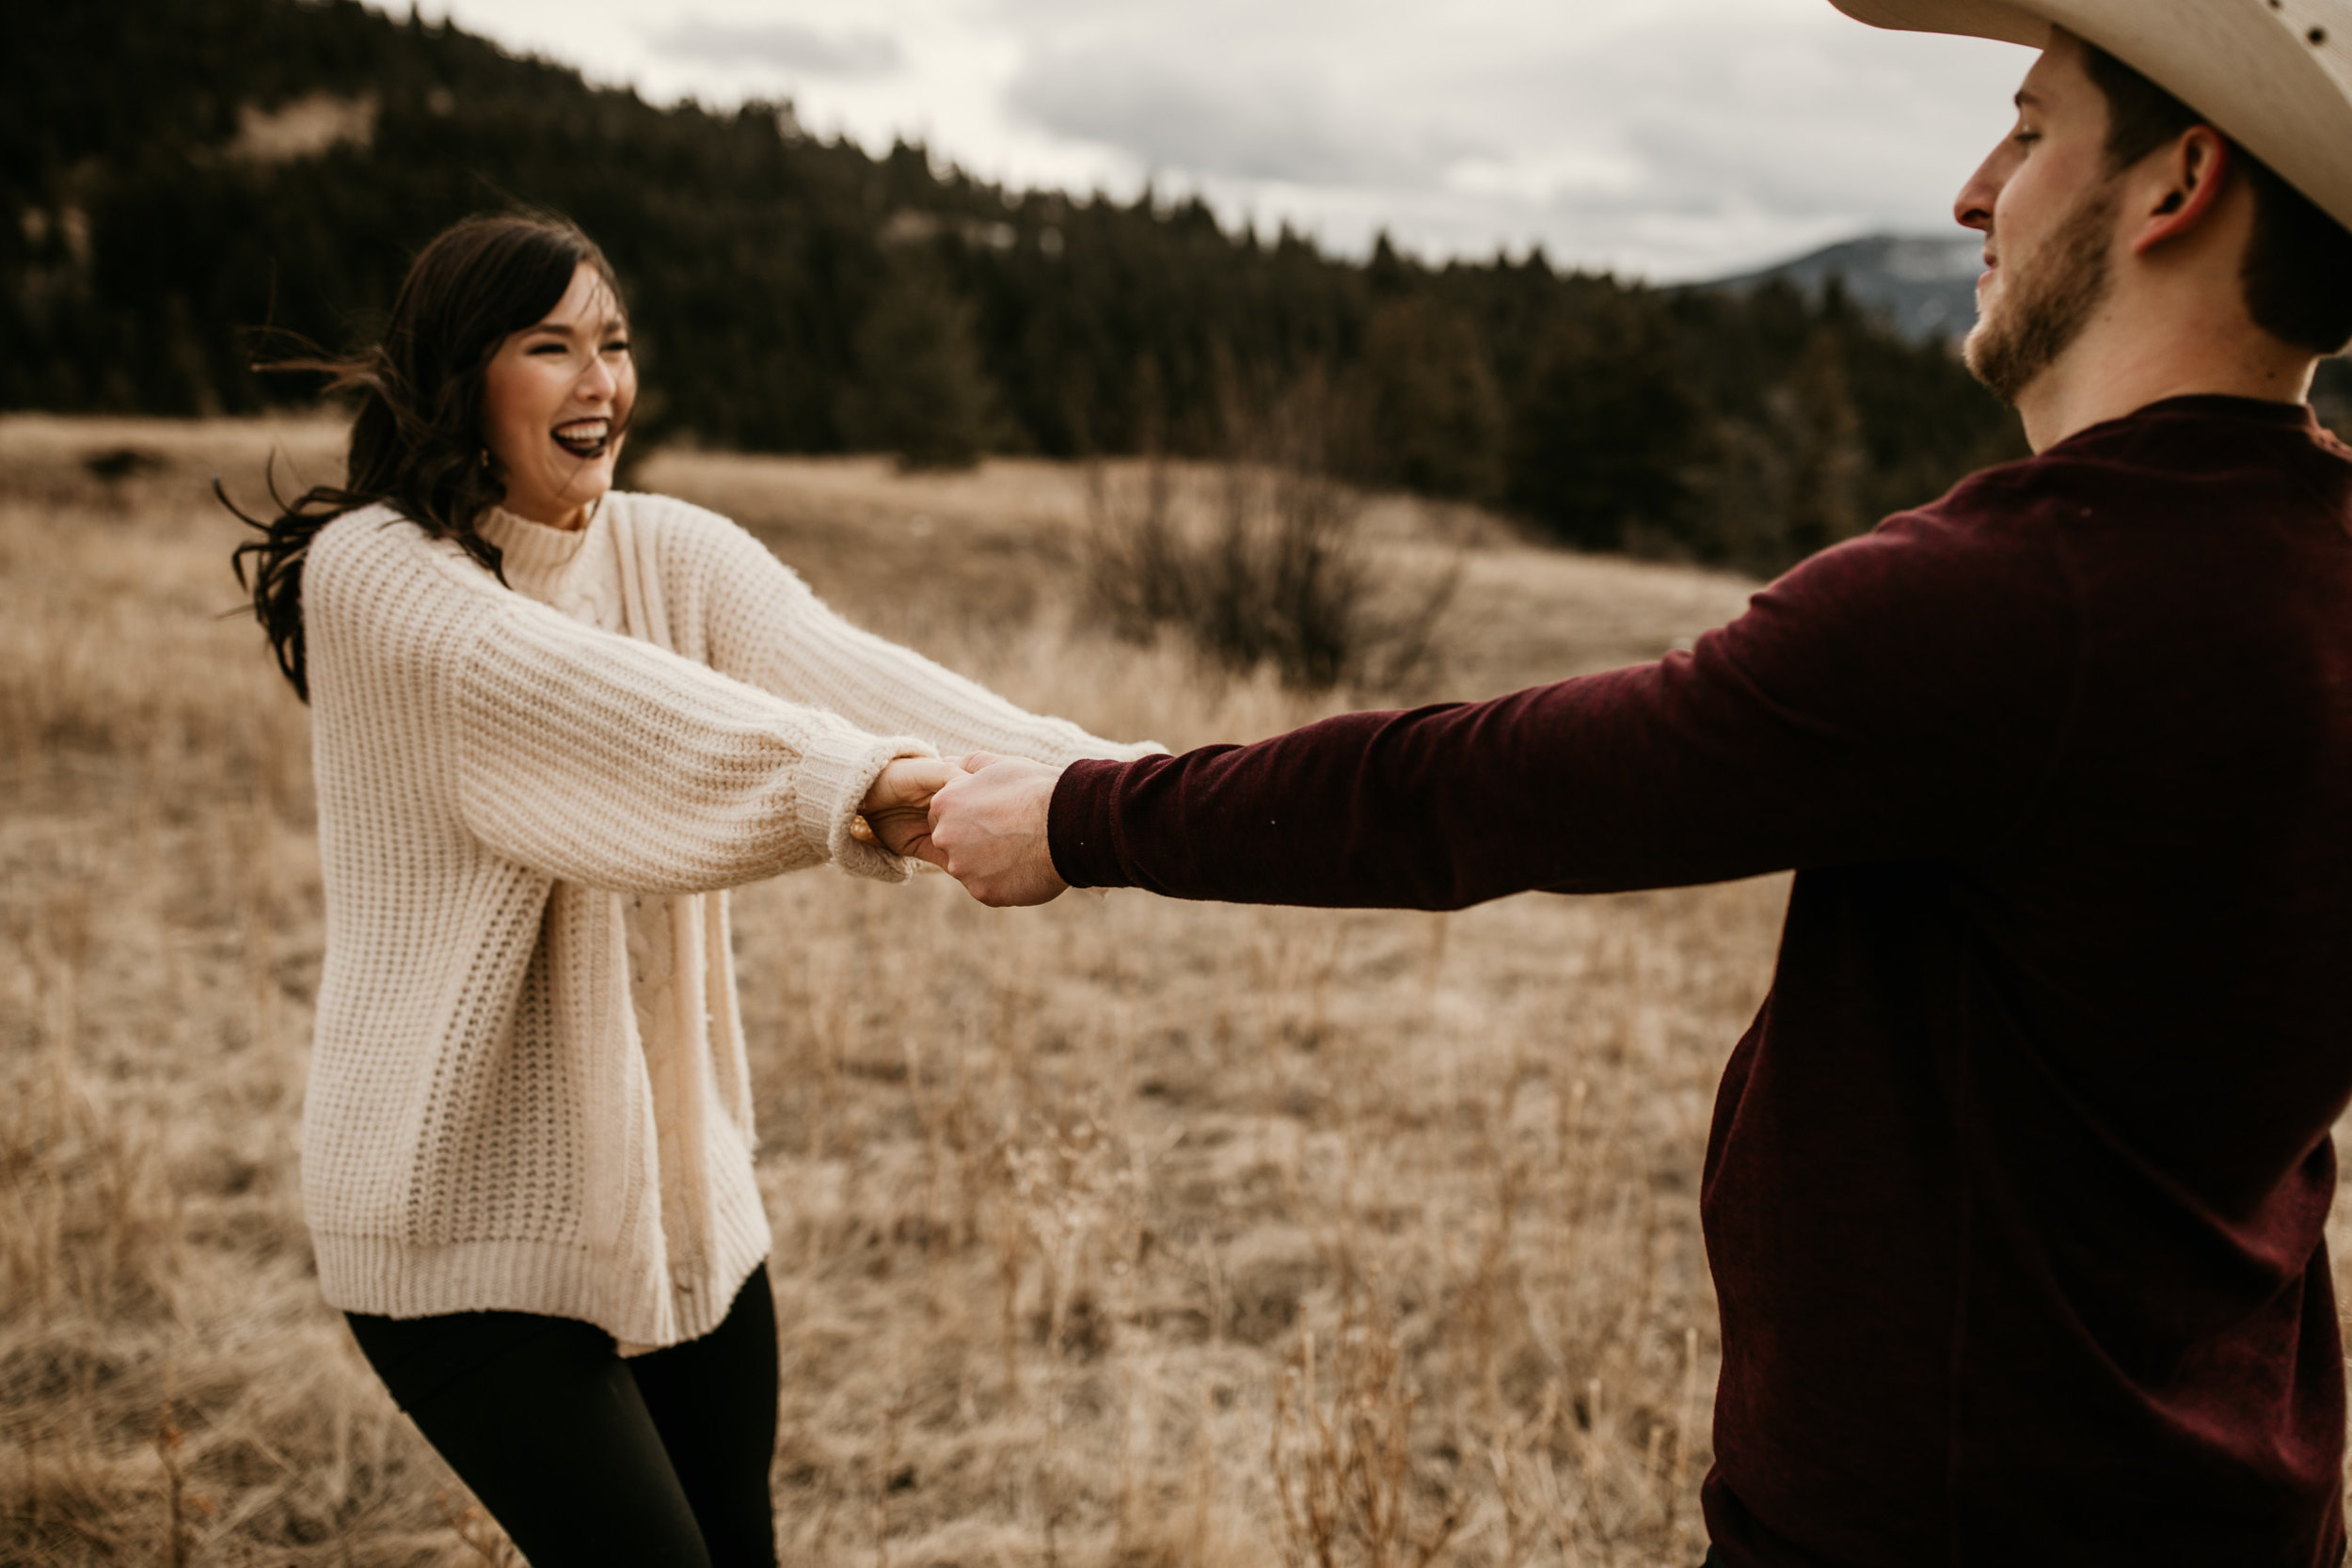 Molly-Trenton_Montana-Waterfall-Engagment-Session-65.jpg